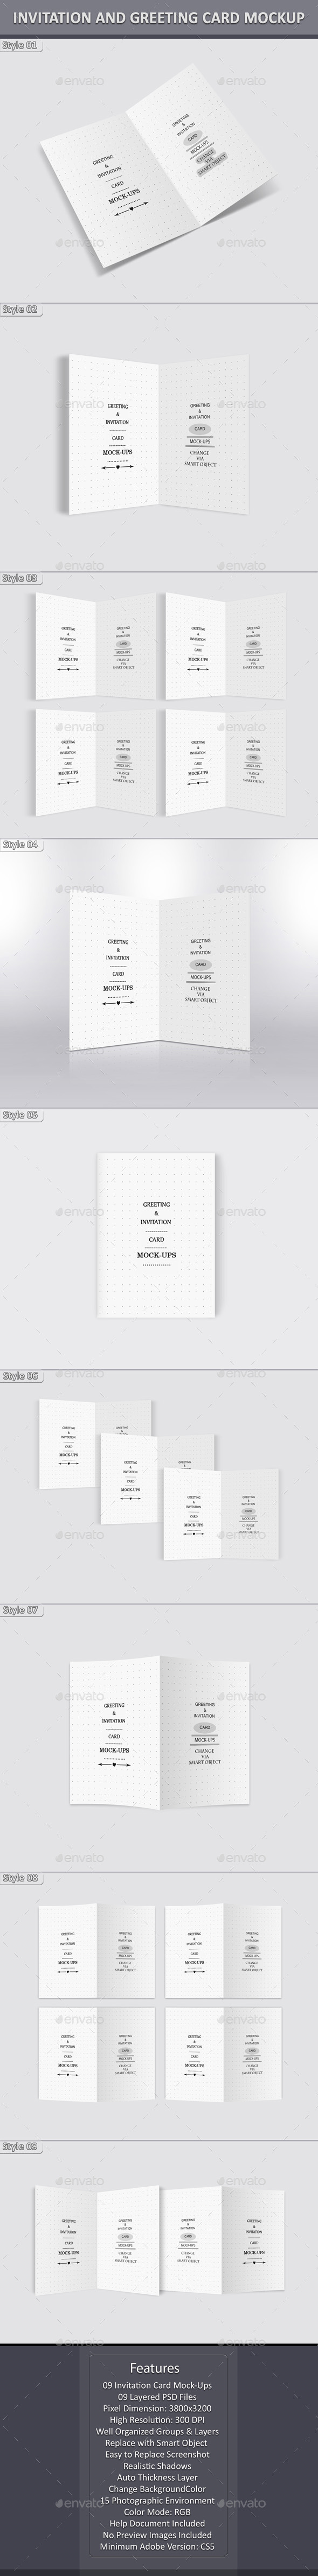 GraphicRiver Invitation and Greeting Card Mockup 10593178